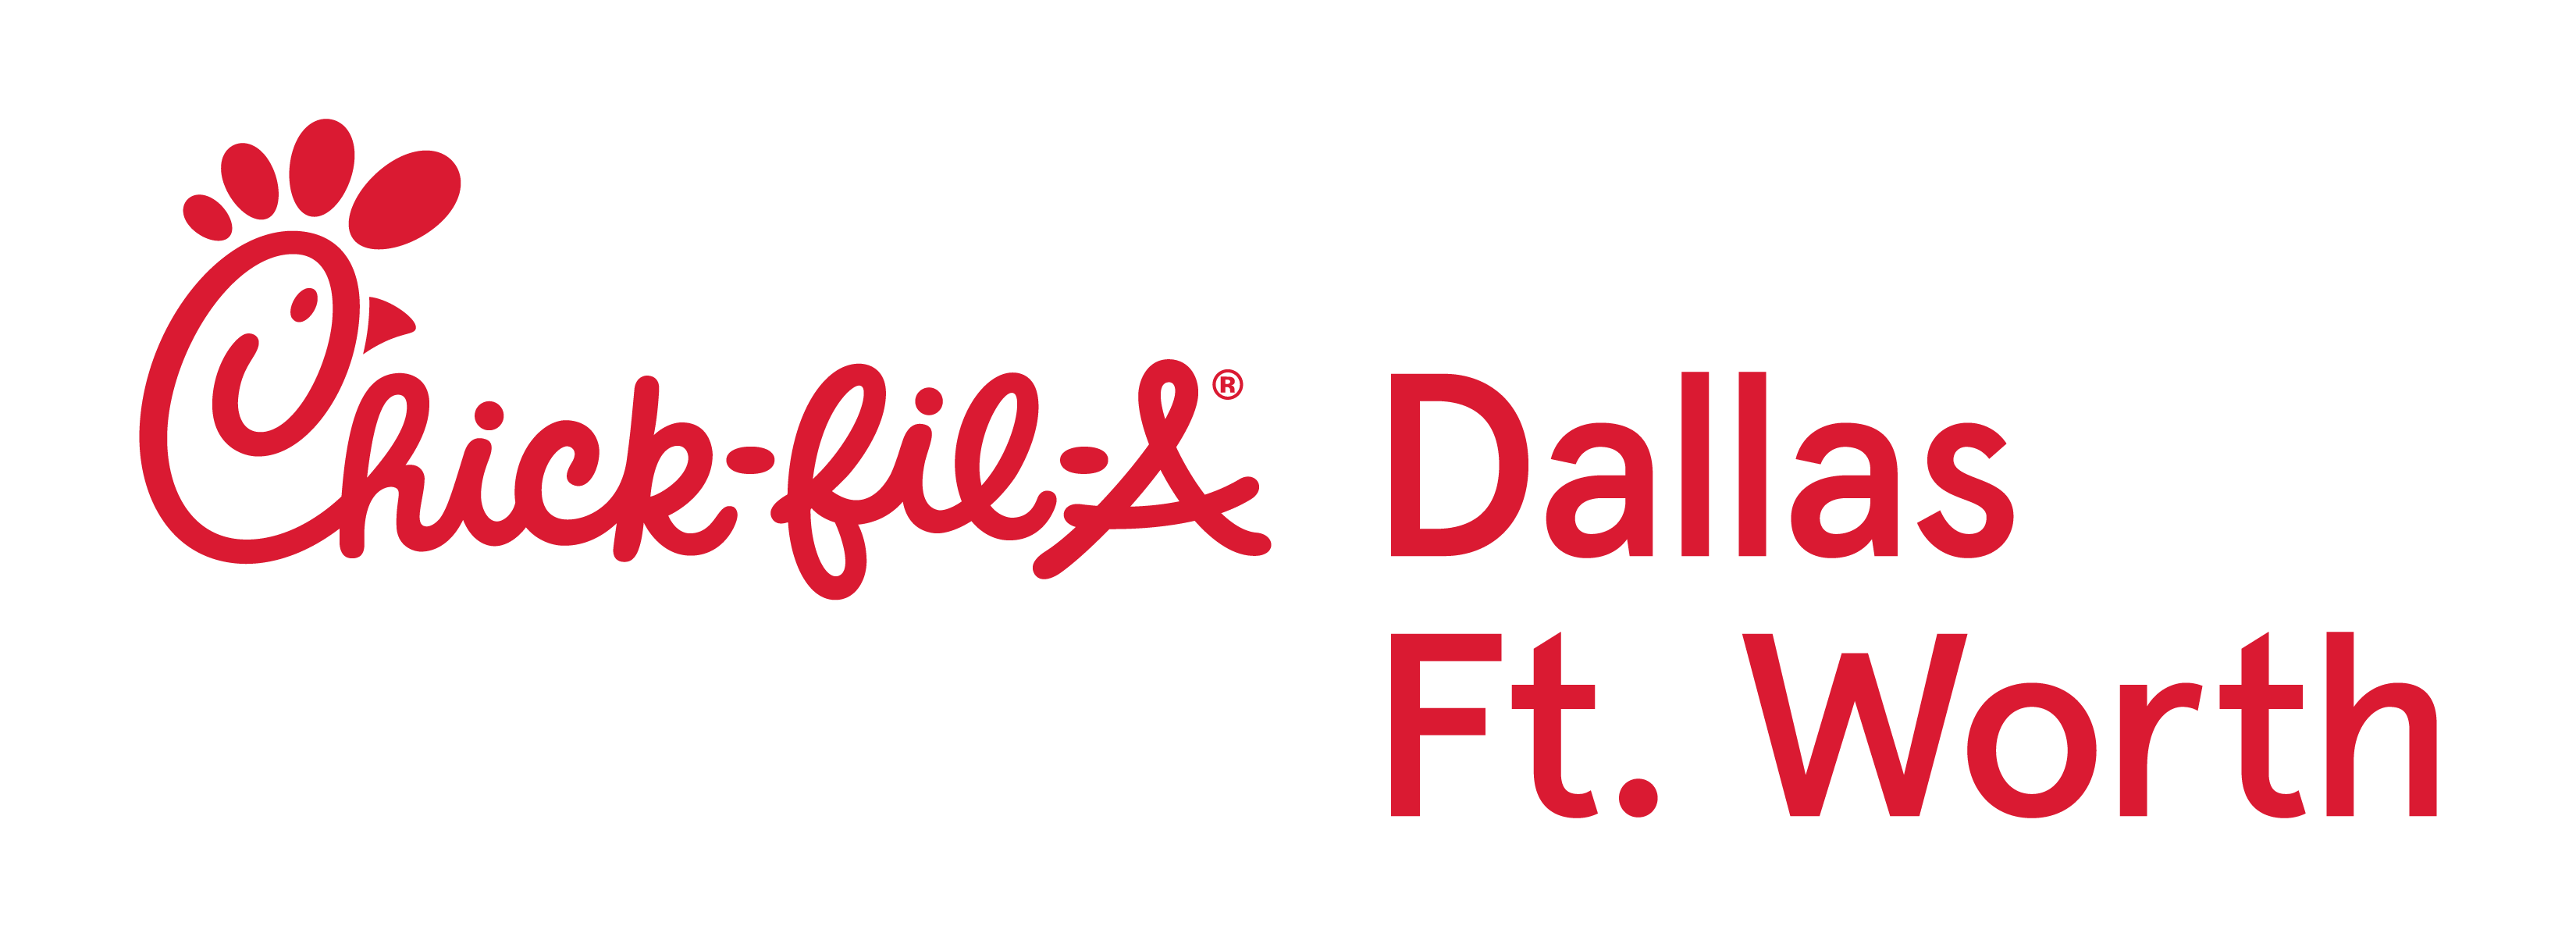 https://jadallas.org/wp-content/uploads/2020/07/FOR-MARKETING-USE_CFA-DFW-HORIZONTAL.png